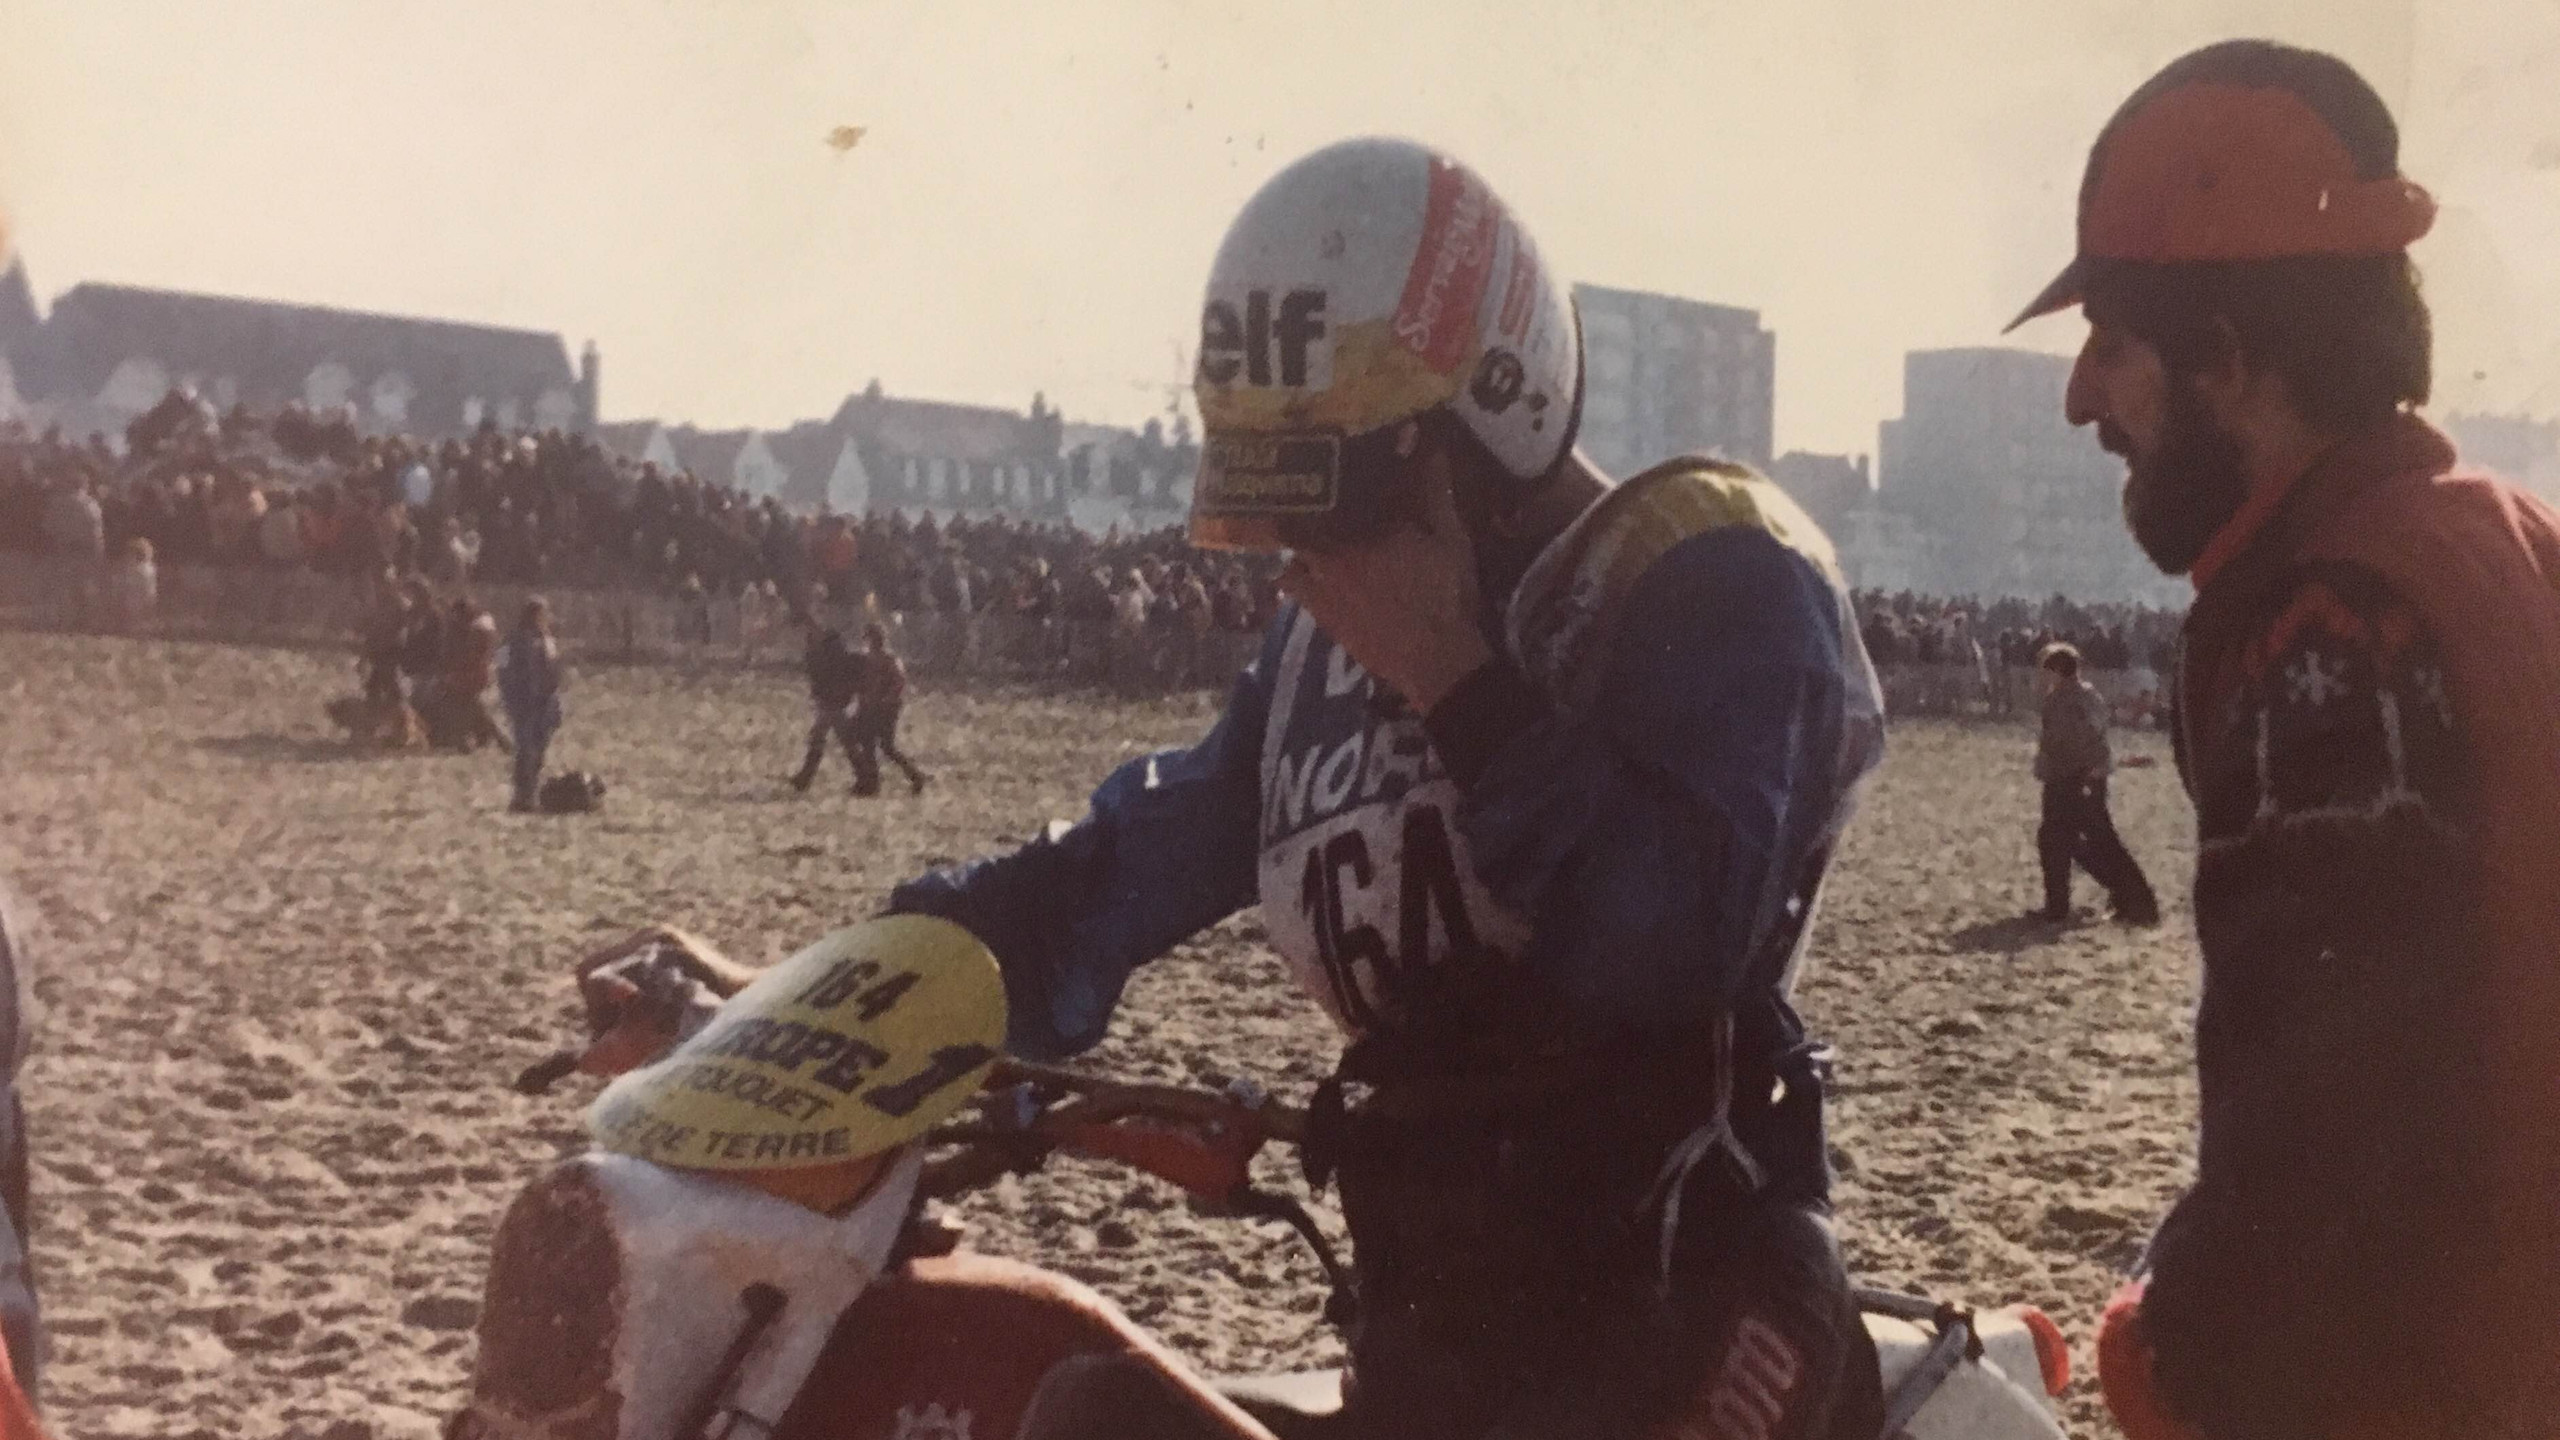 Broken shock at Le Touquet in 1981